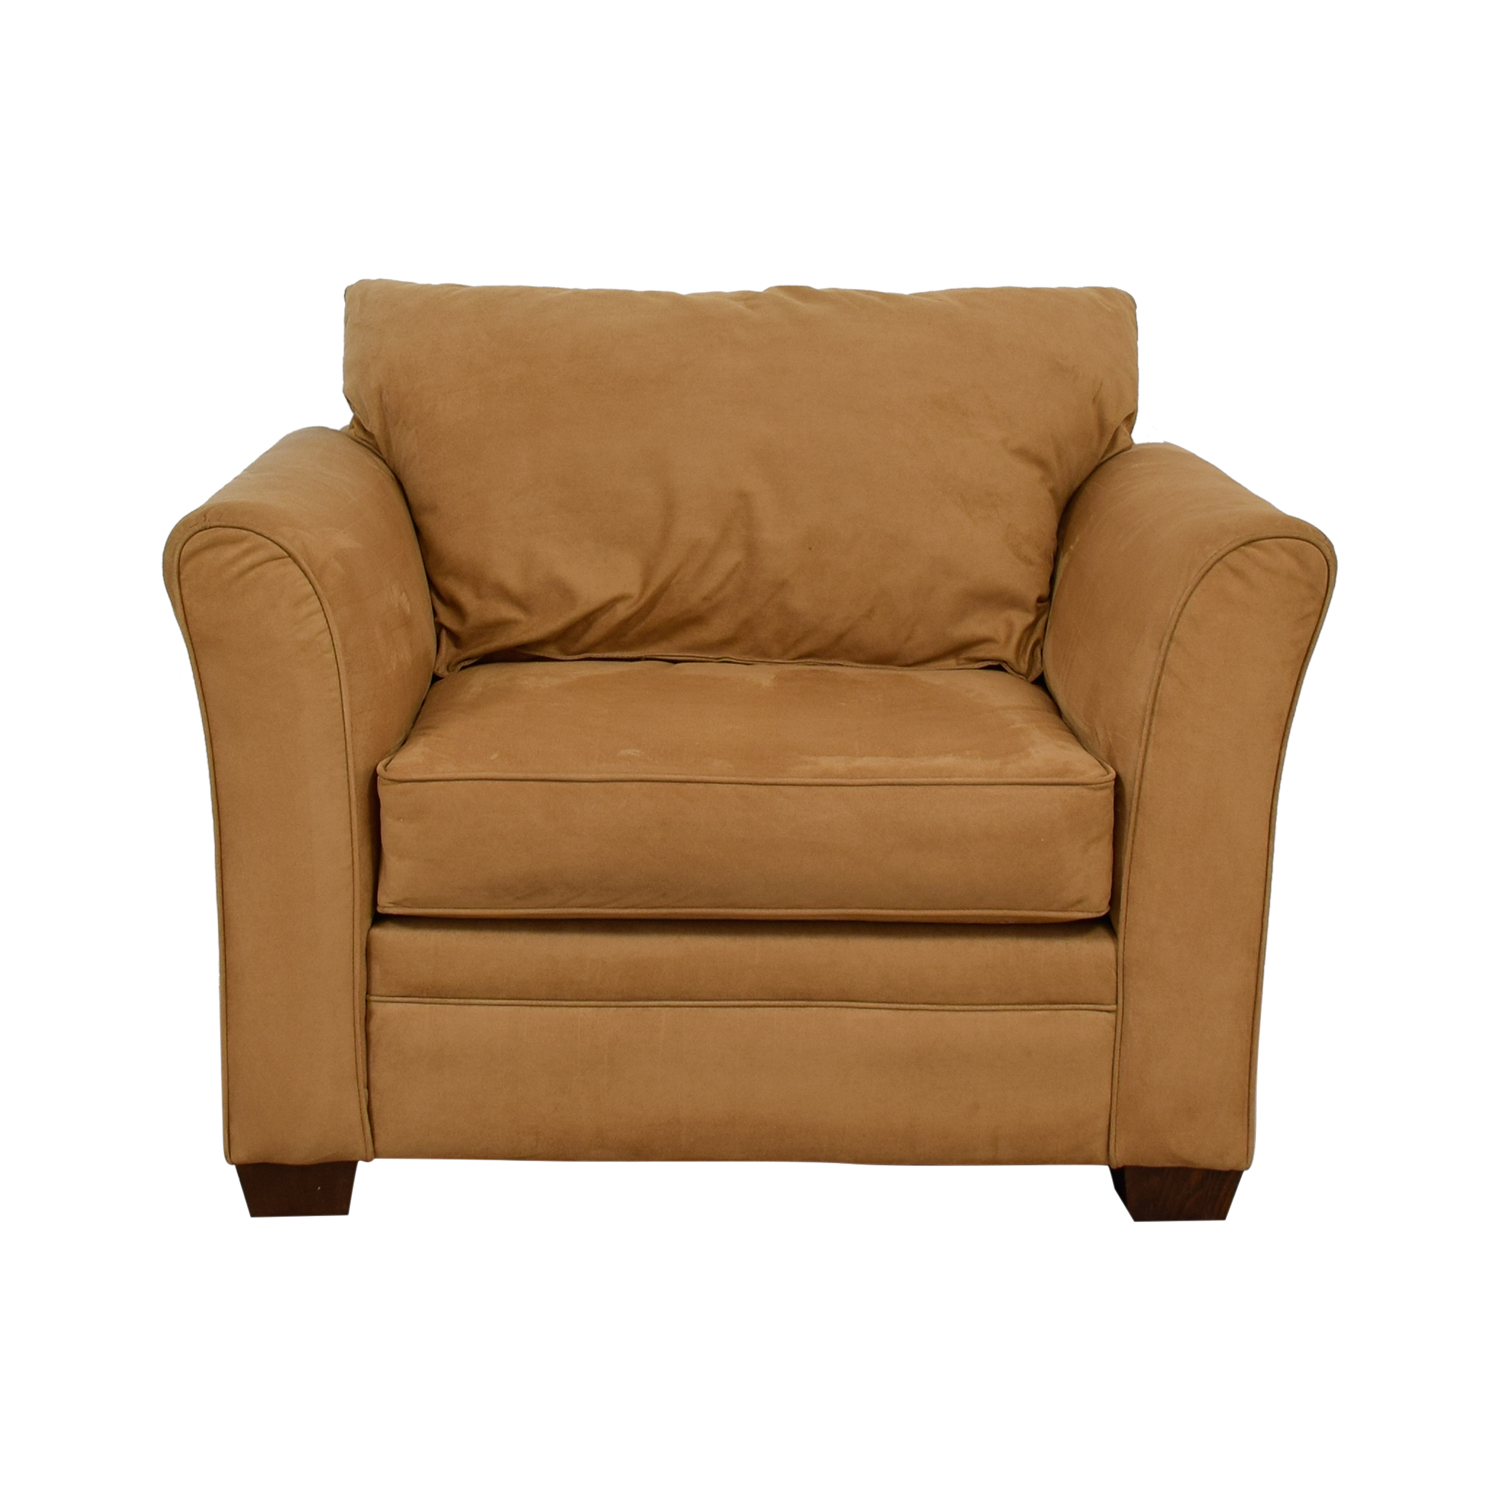 buy Raymour & Flanigan Camel Microsuede Accent Chair Raymour & Flanigan